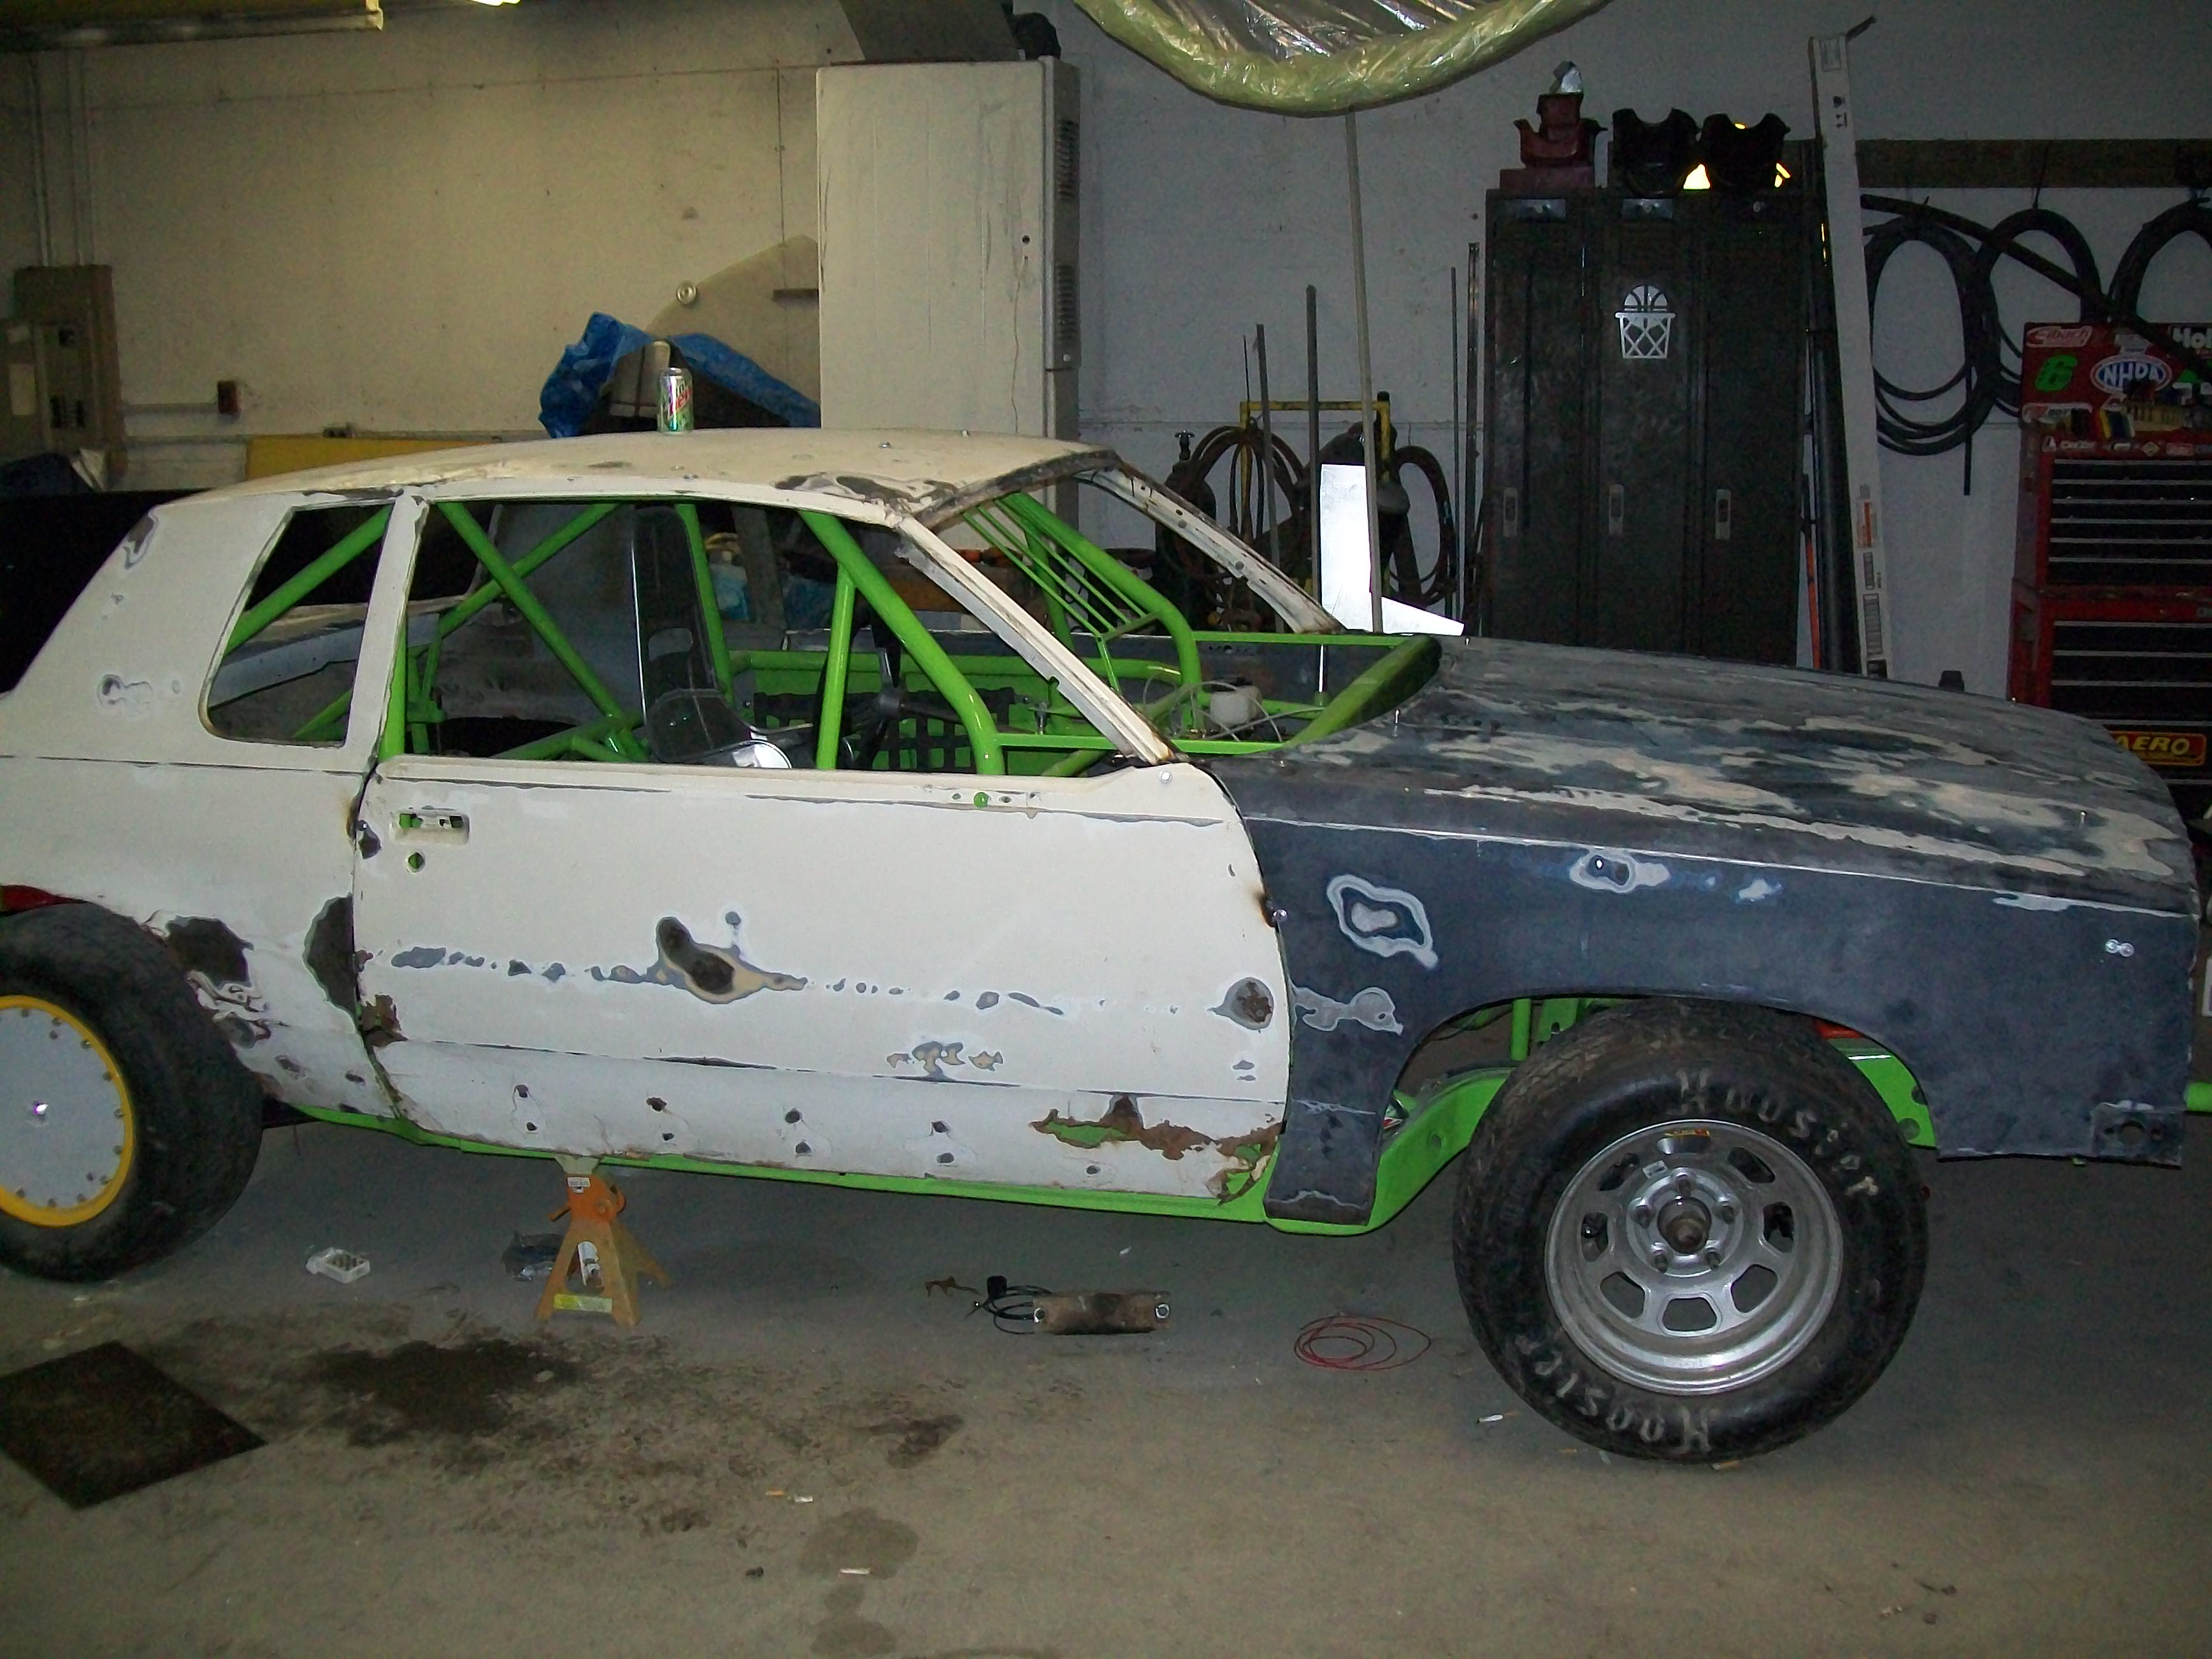 2008 penatrator Stock Car